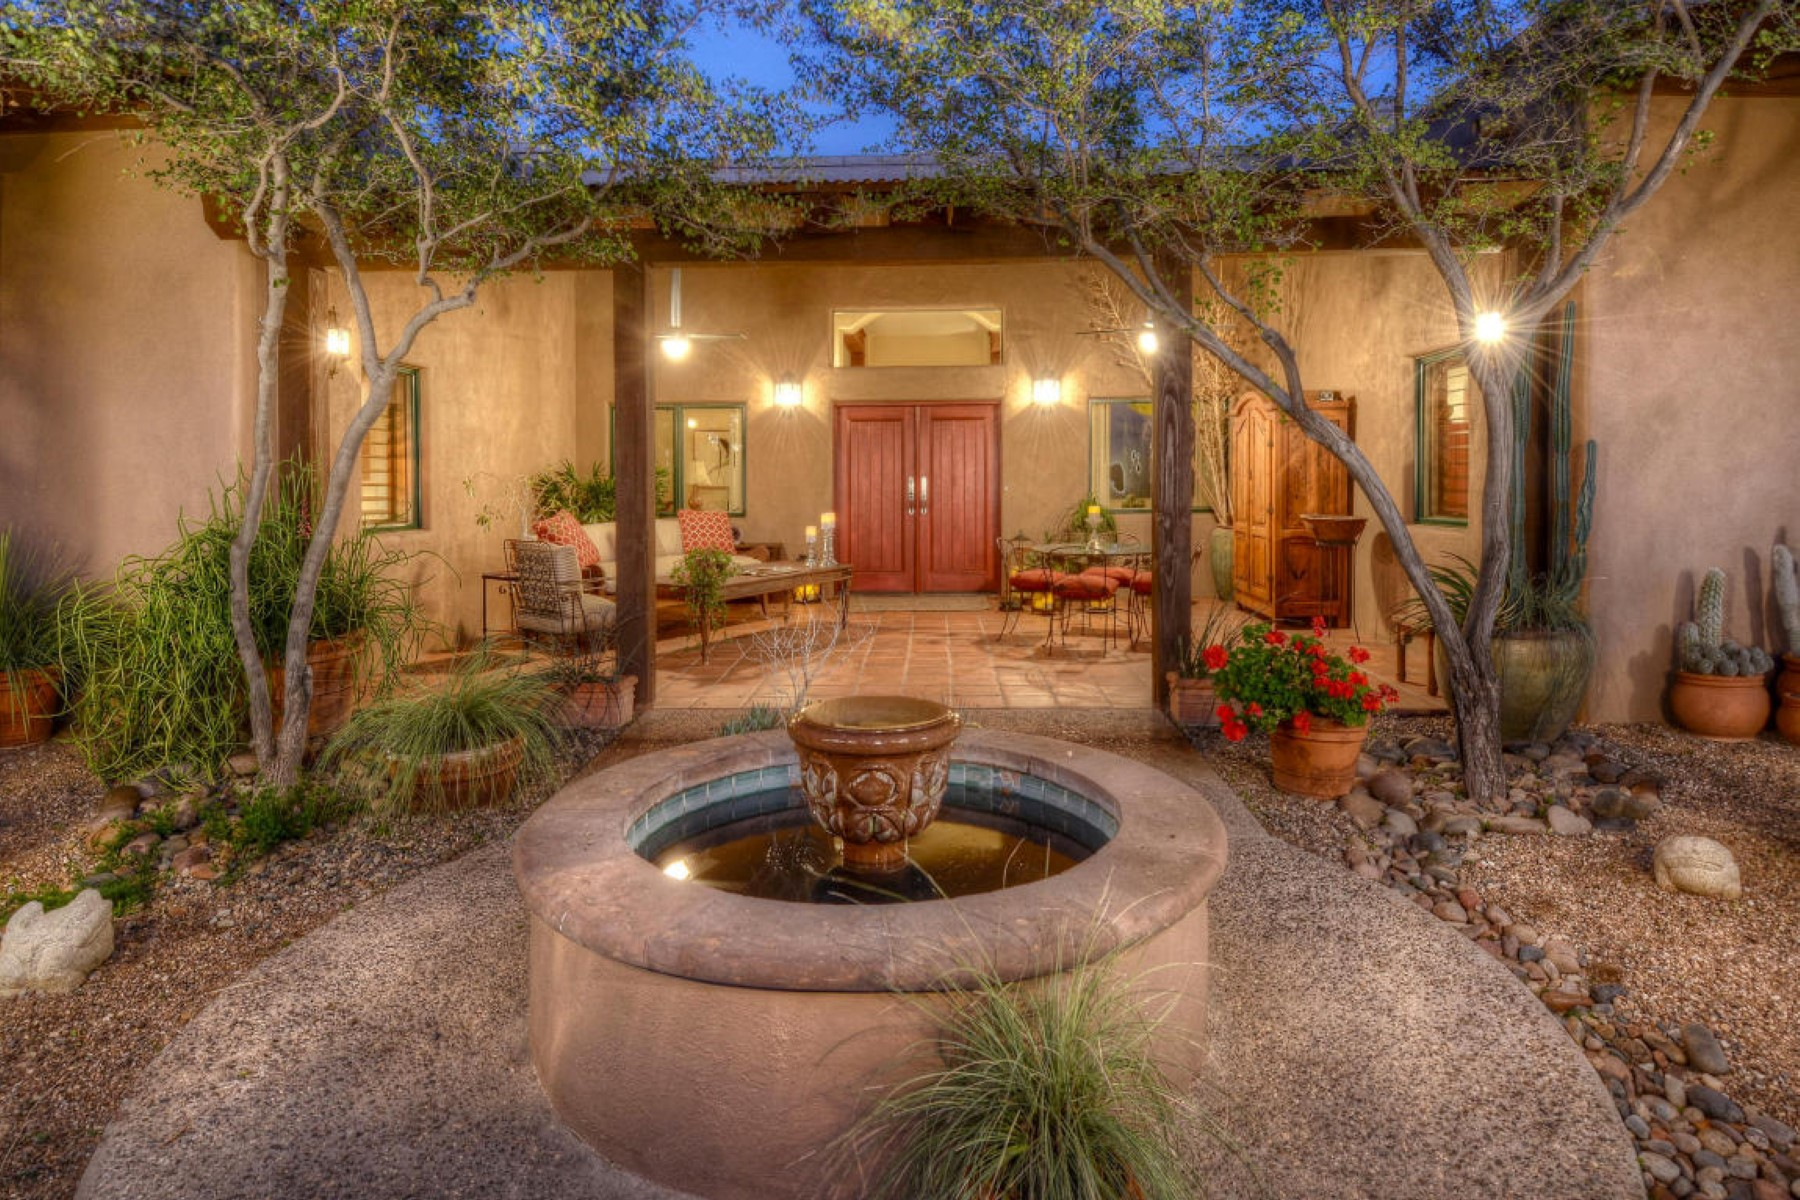 Moradia para Venda às Exquisite Hacienda Ranch secluded 10 acre retreat 13450 N Teal Blue Trail Tucson, Arizona 85742 Estados Unidos